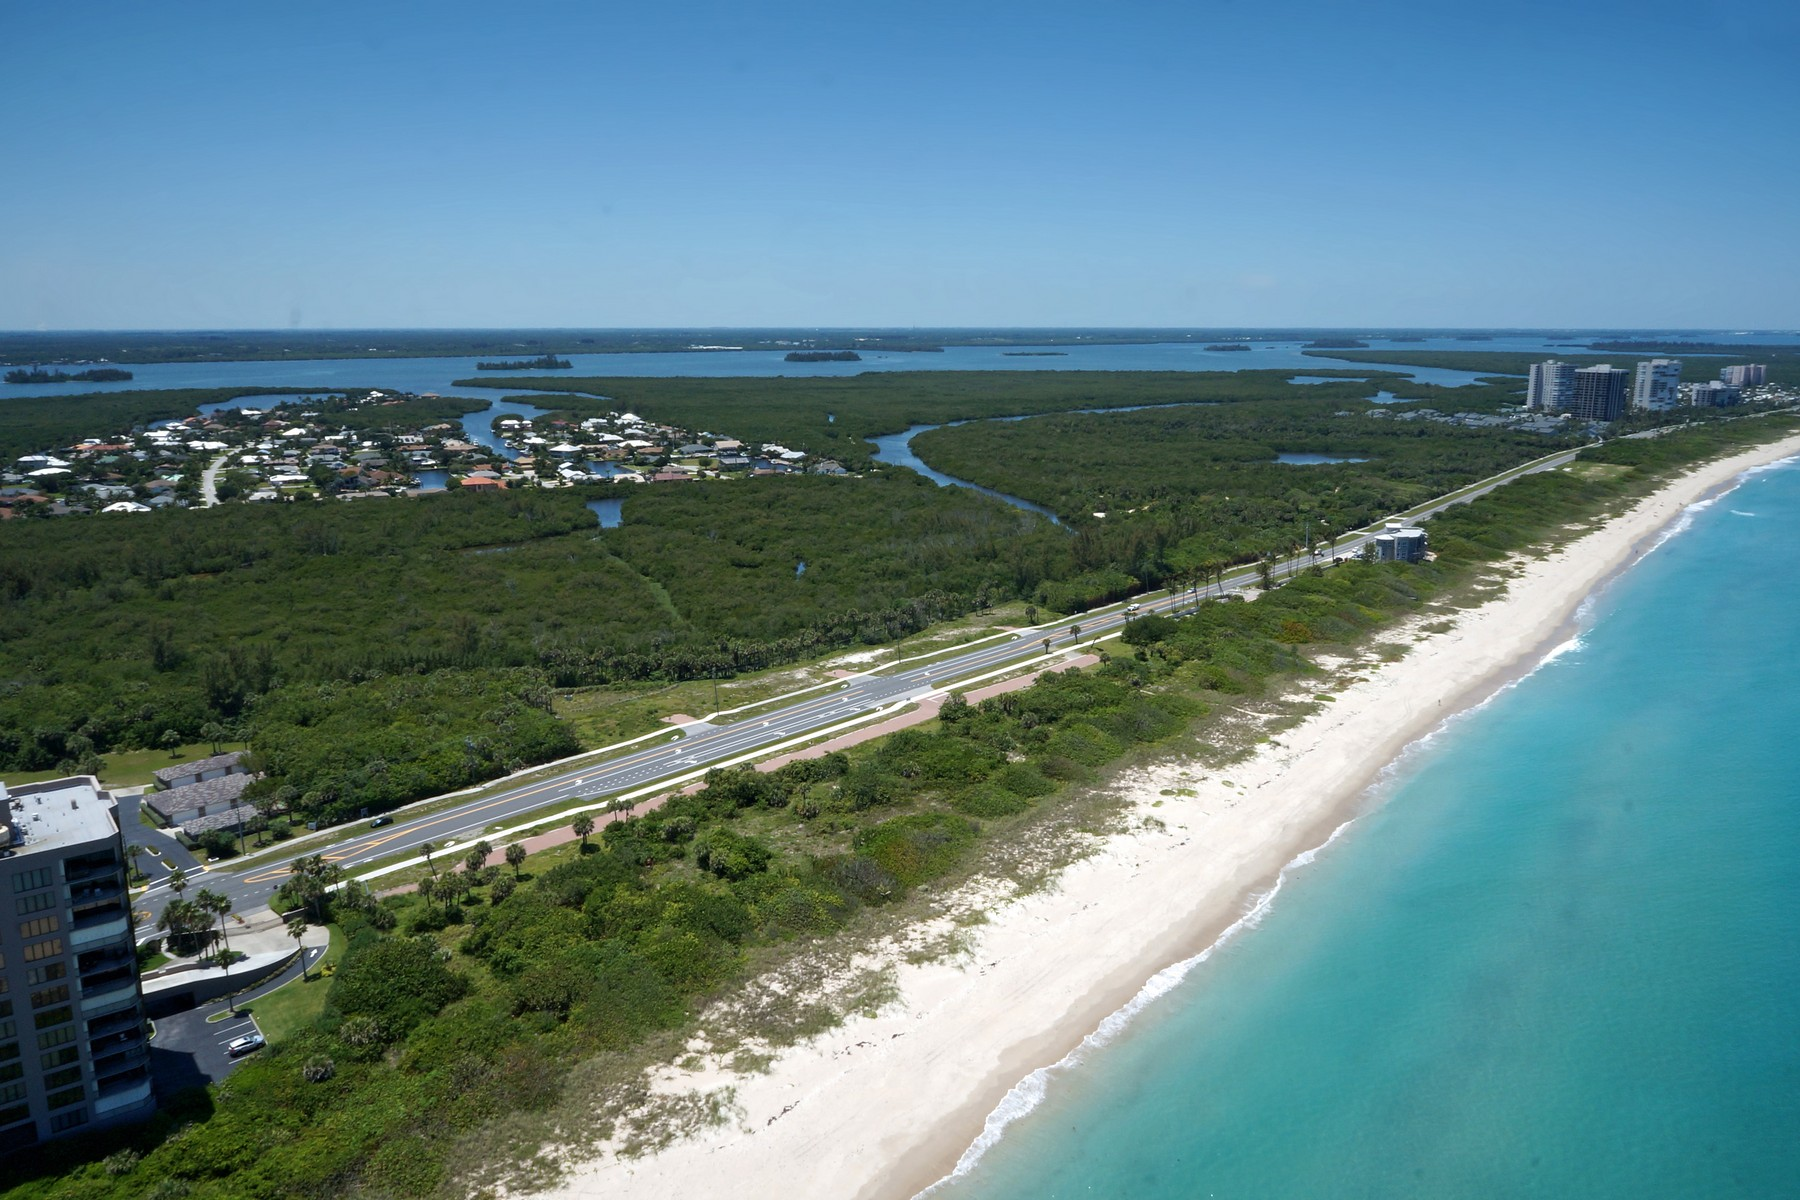 Beautiful Homesite on North Hutchinson Island 4501 N HIGHWAY A1A Hutchinson Island, Florida 34949 Amerika Birleşik Devletleri